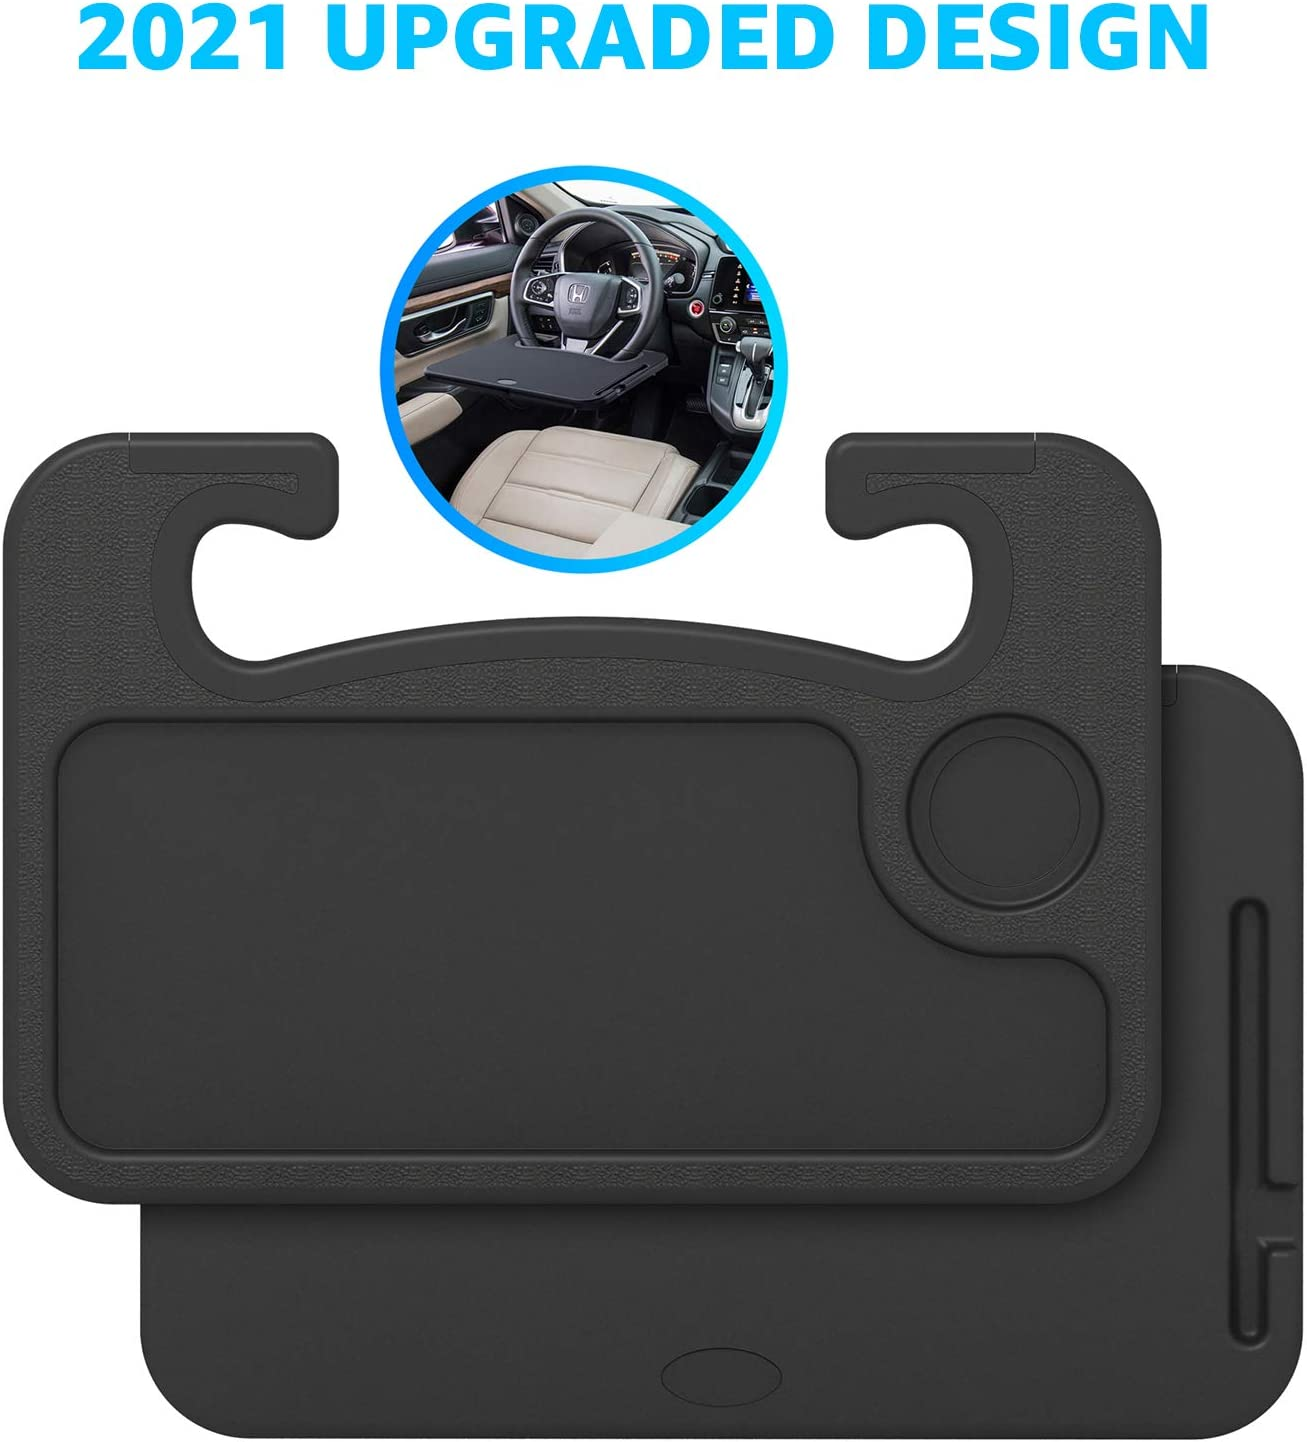 Steering Wheel Tray with Edge Protection Multifunctional Car Table Desk for Eating Writing, Laptop Fits Most Vehicles Steering Wheels (Won't Damage Steering Wheel)